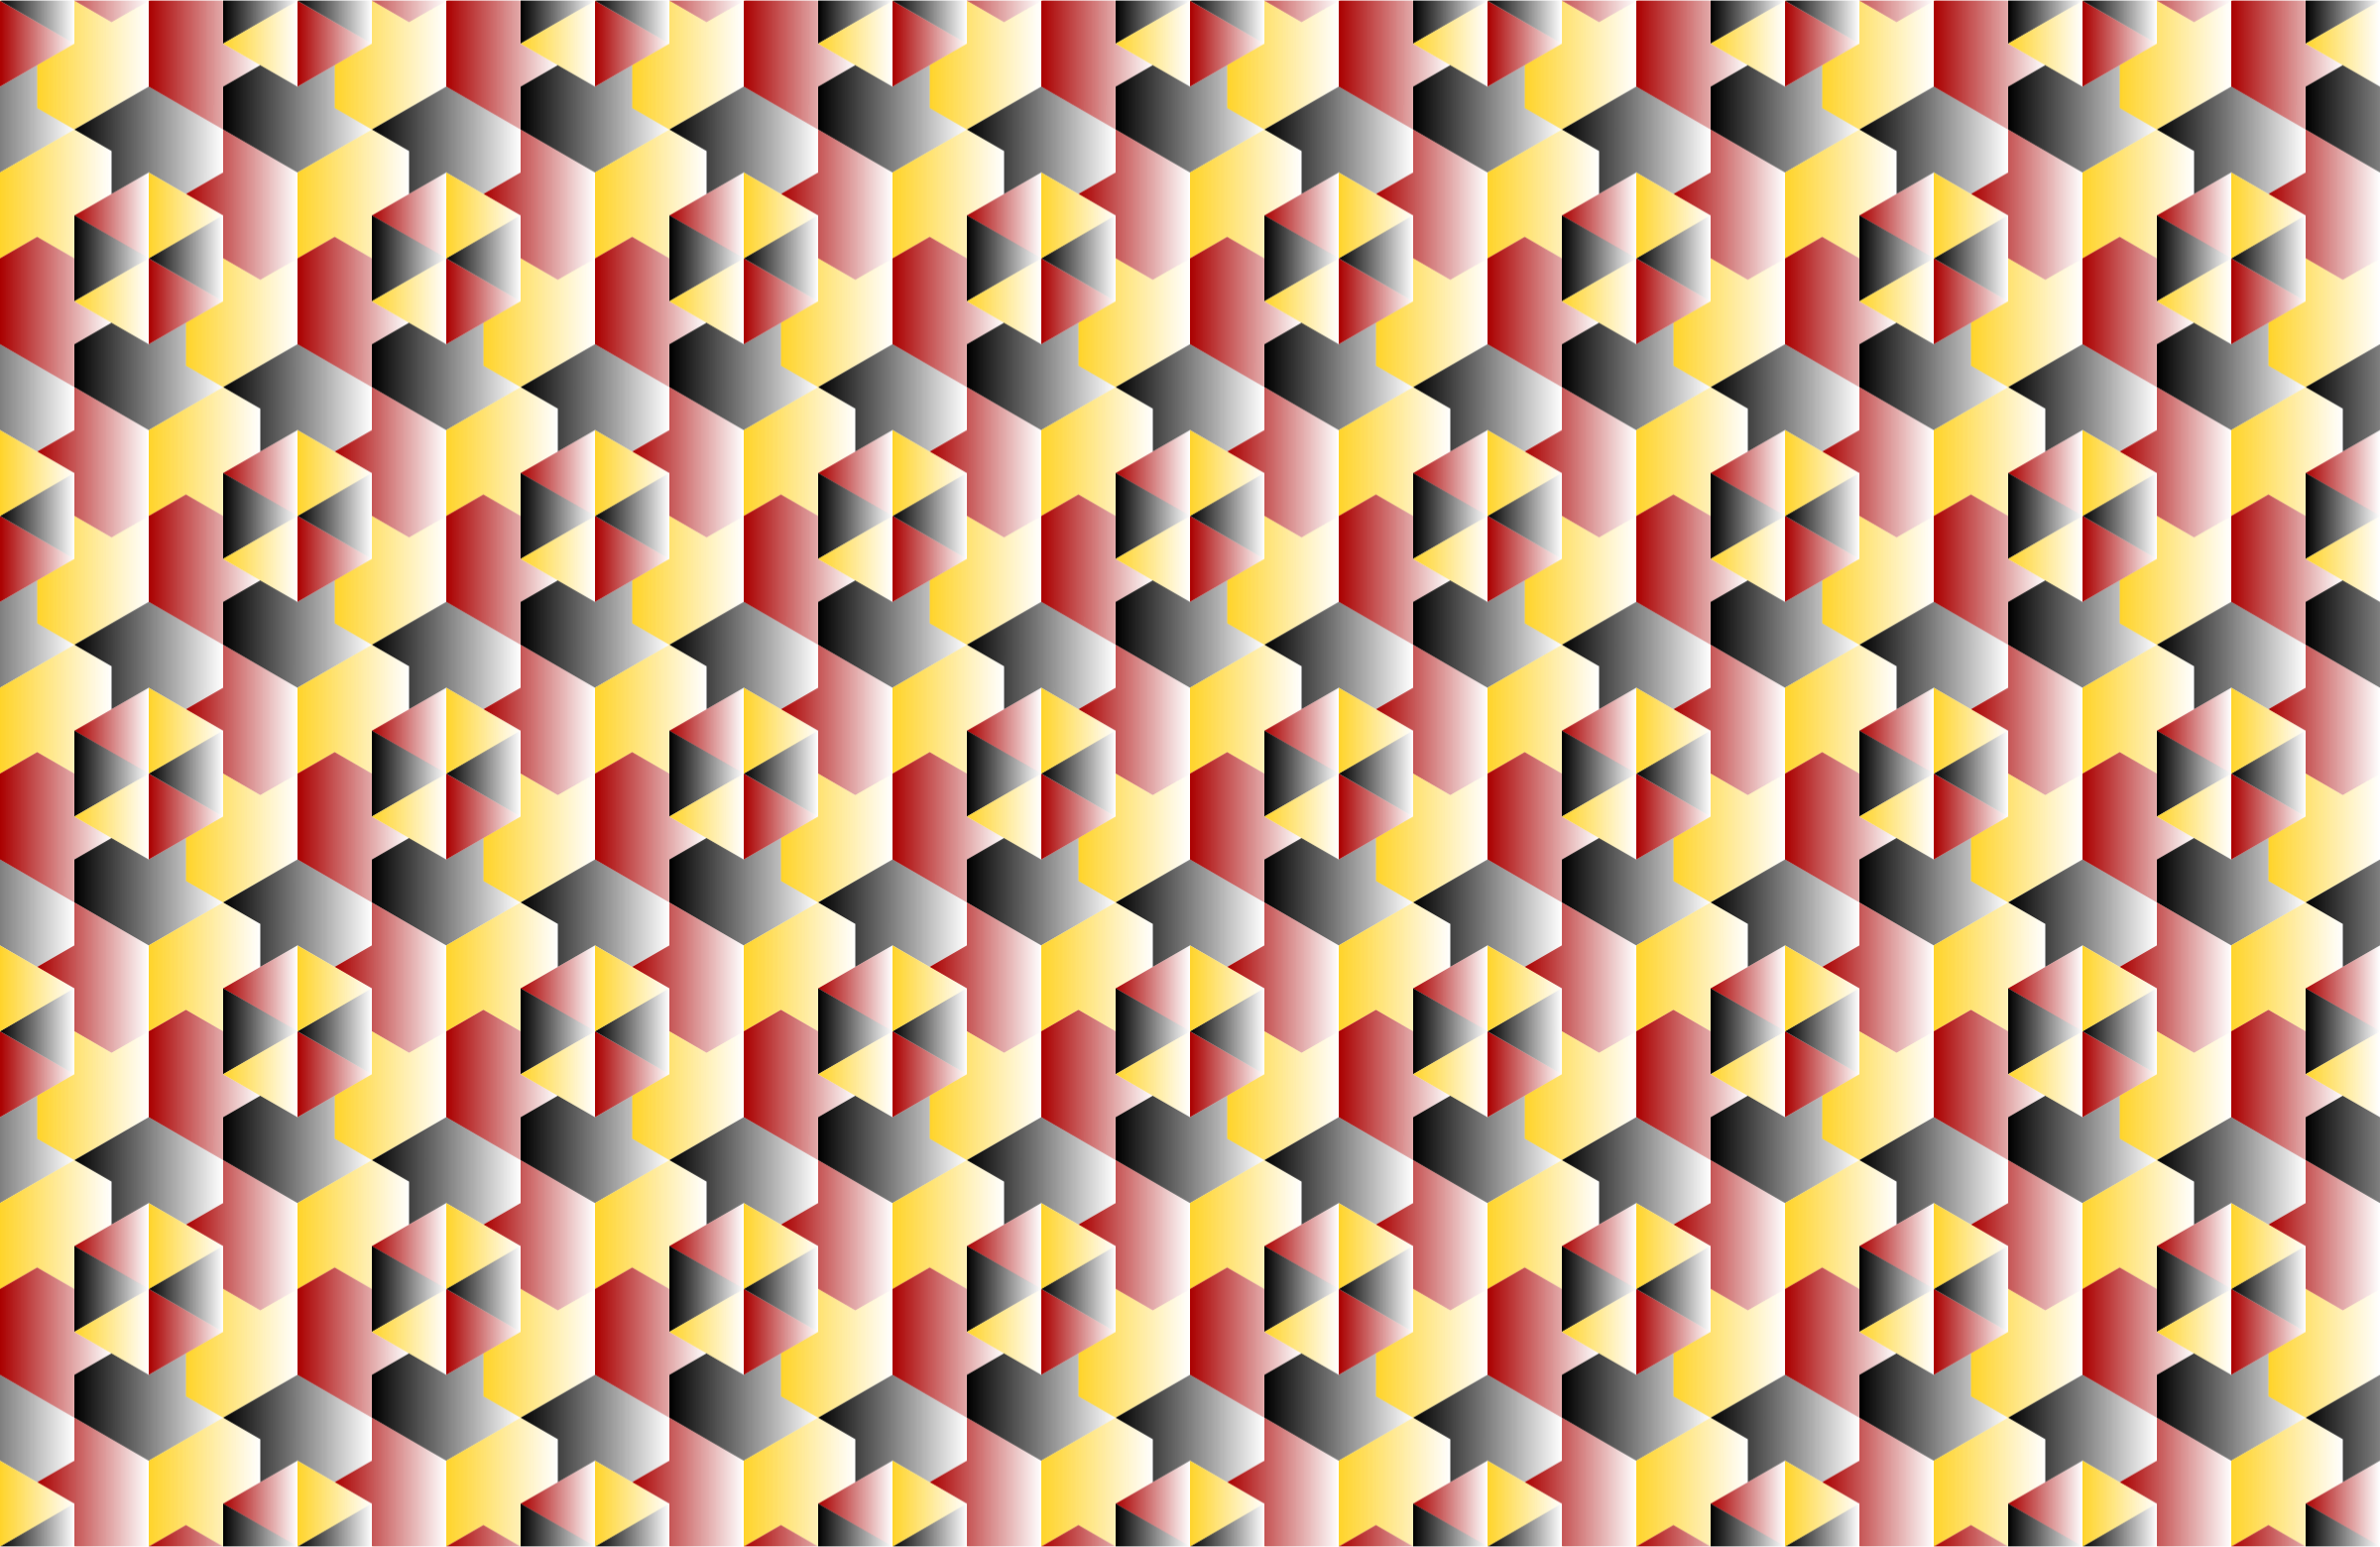 Tessellation 14 variant 1 by Firkin